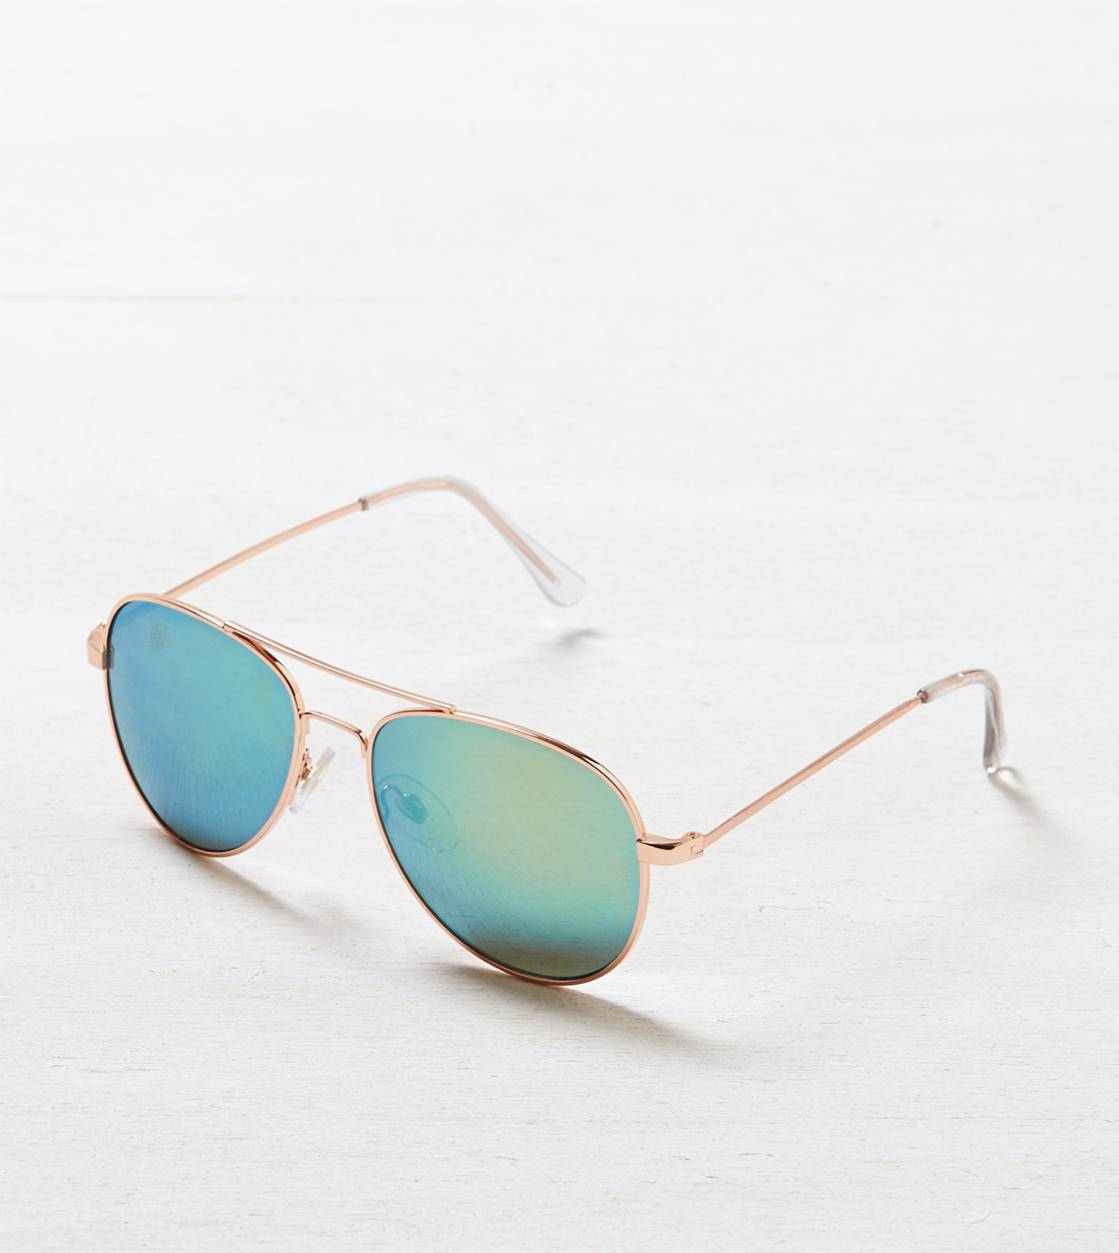 Rose Gold AEO Mirrored Aviator Sunglasses